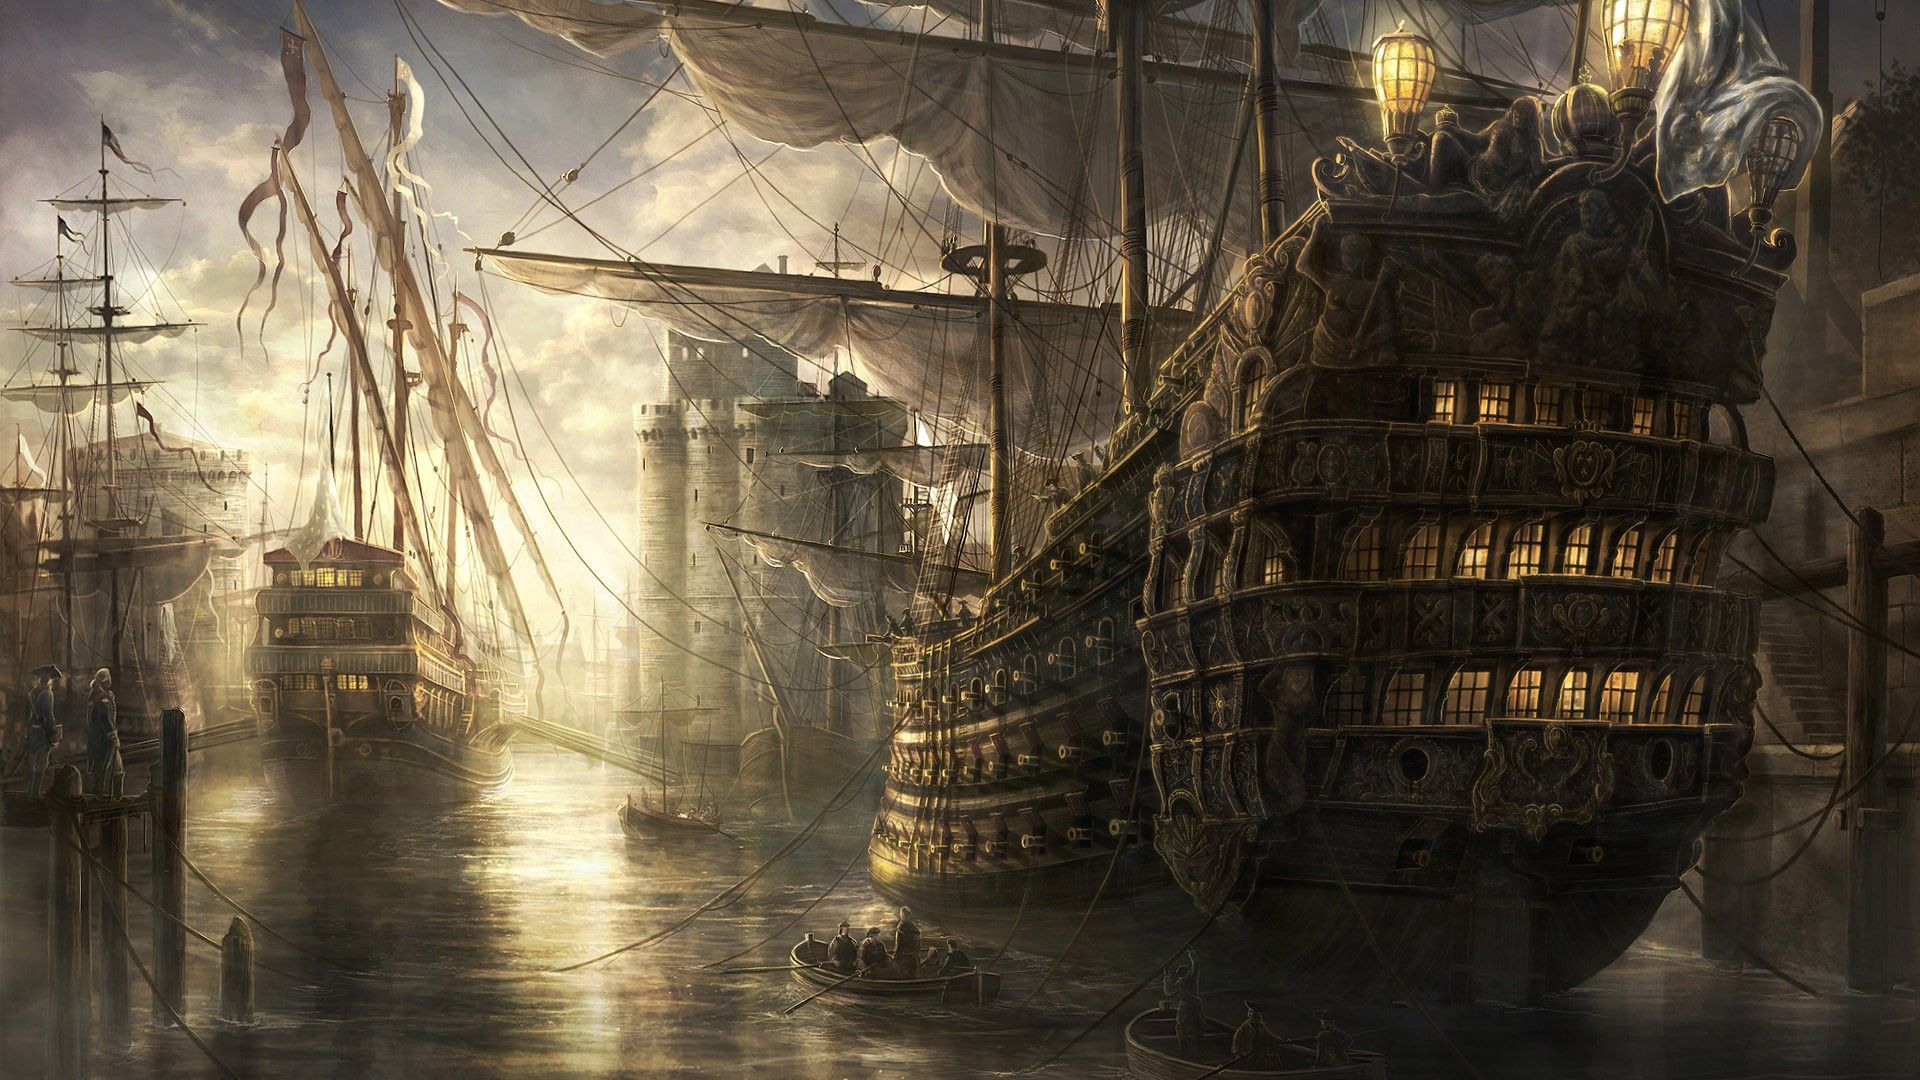 Old Sailing Ships in Harbour gaming games images pictures